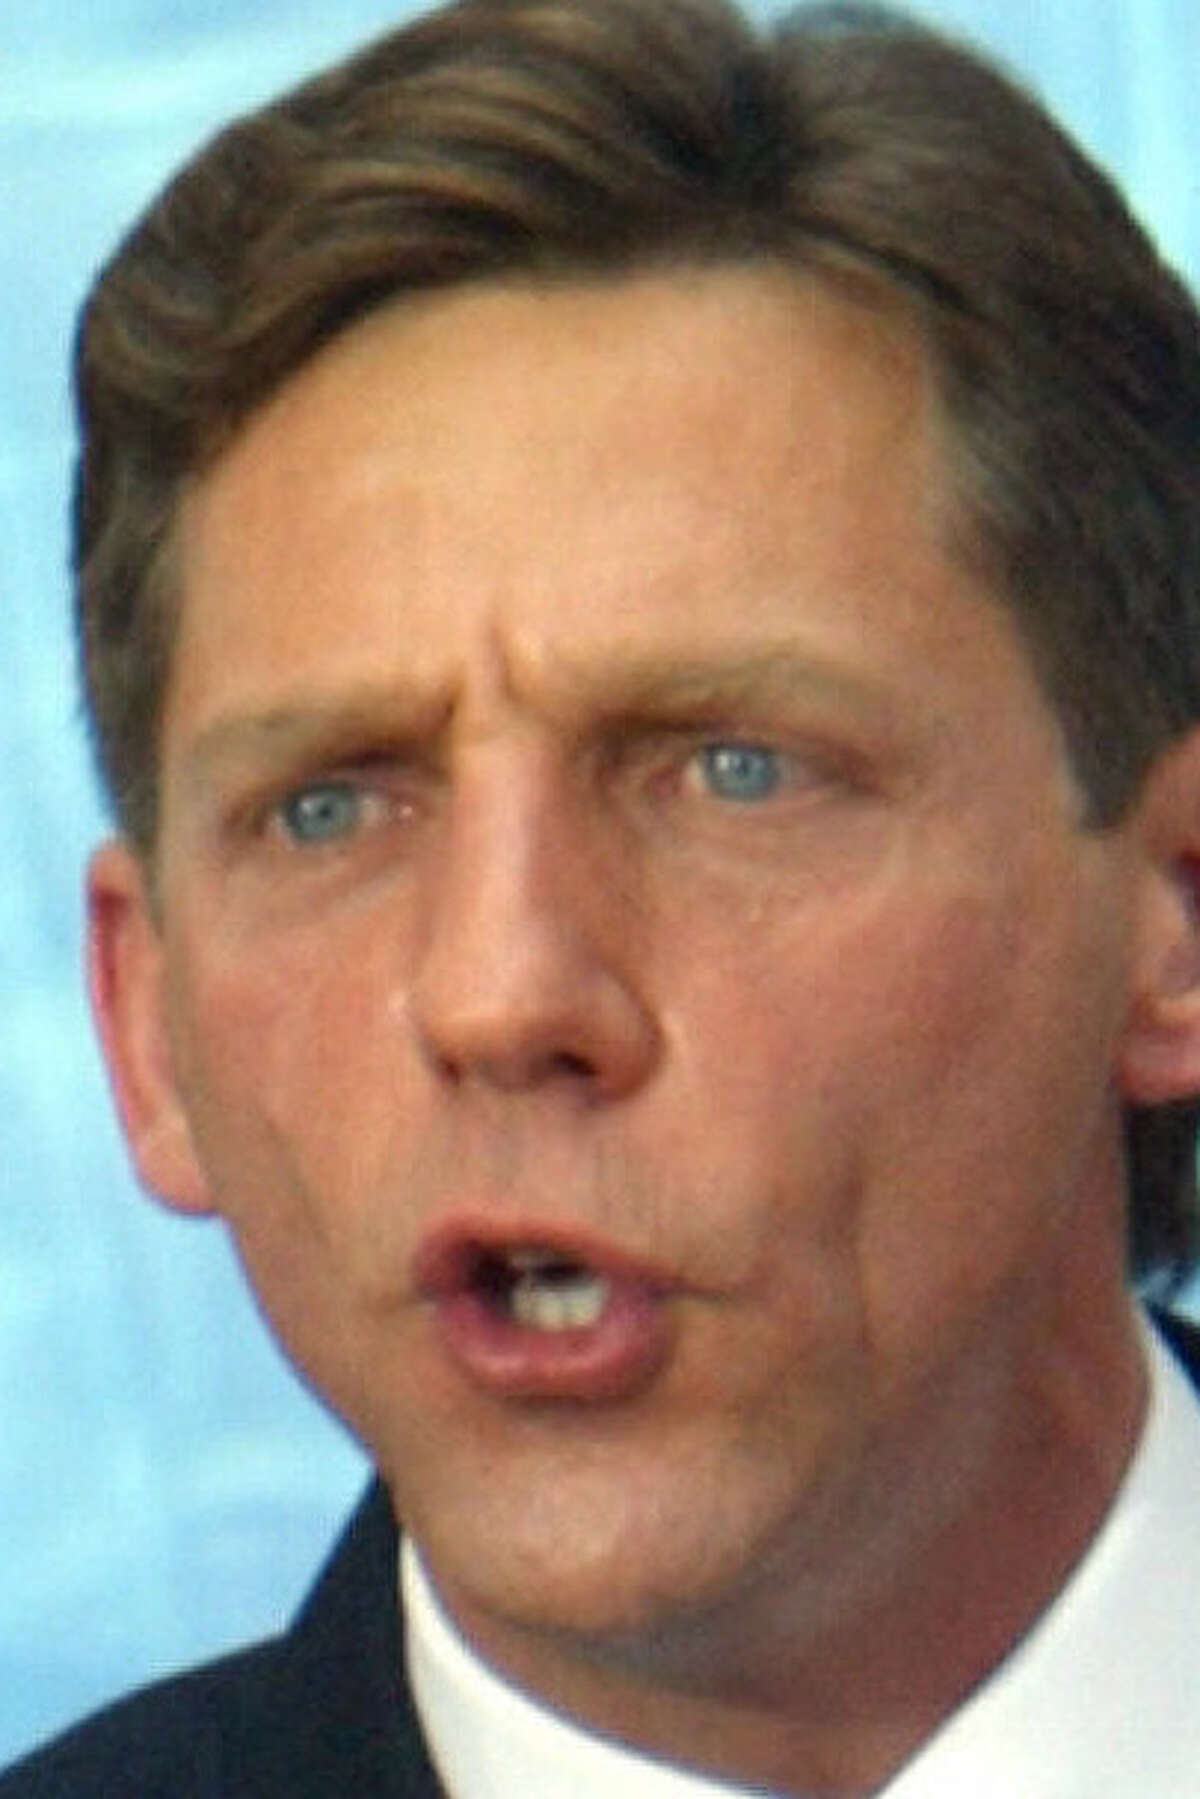 David Miscavige is one of five defendants in a lawsuit filed in Comal County by Monique Rathbun.